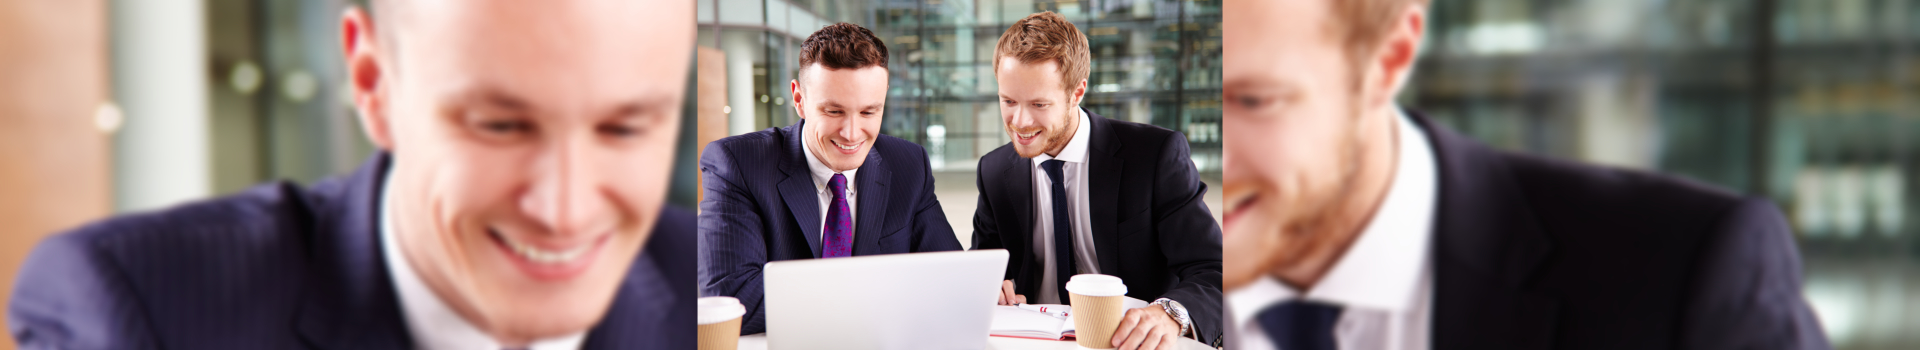 young businessmen using a laptop